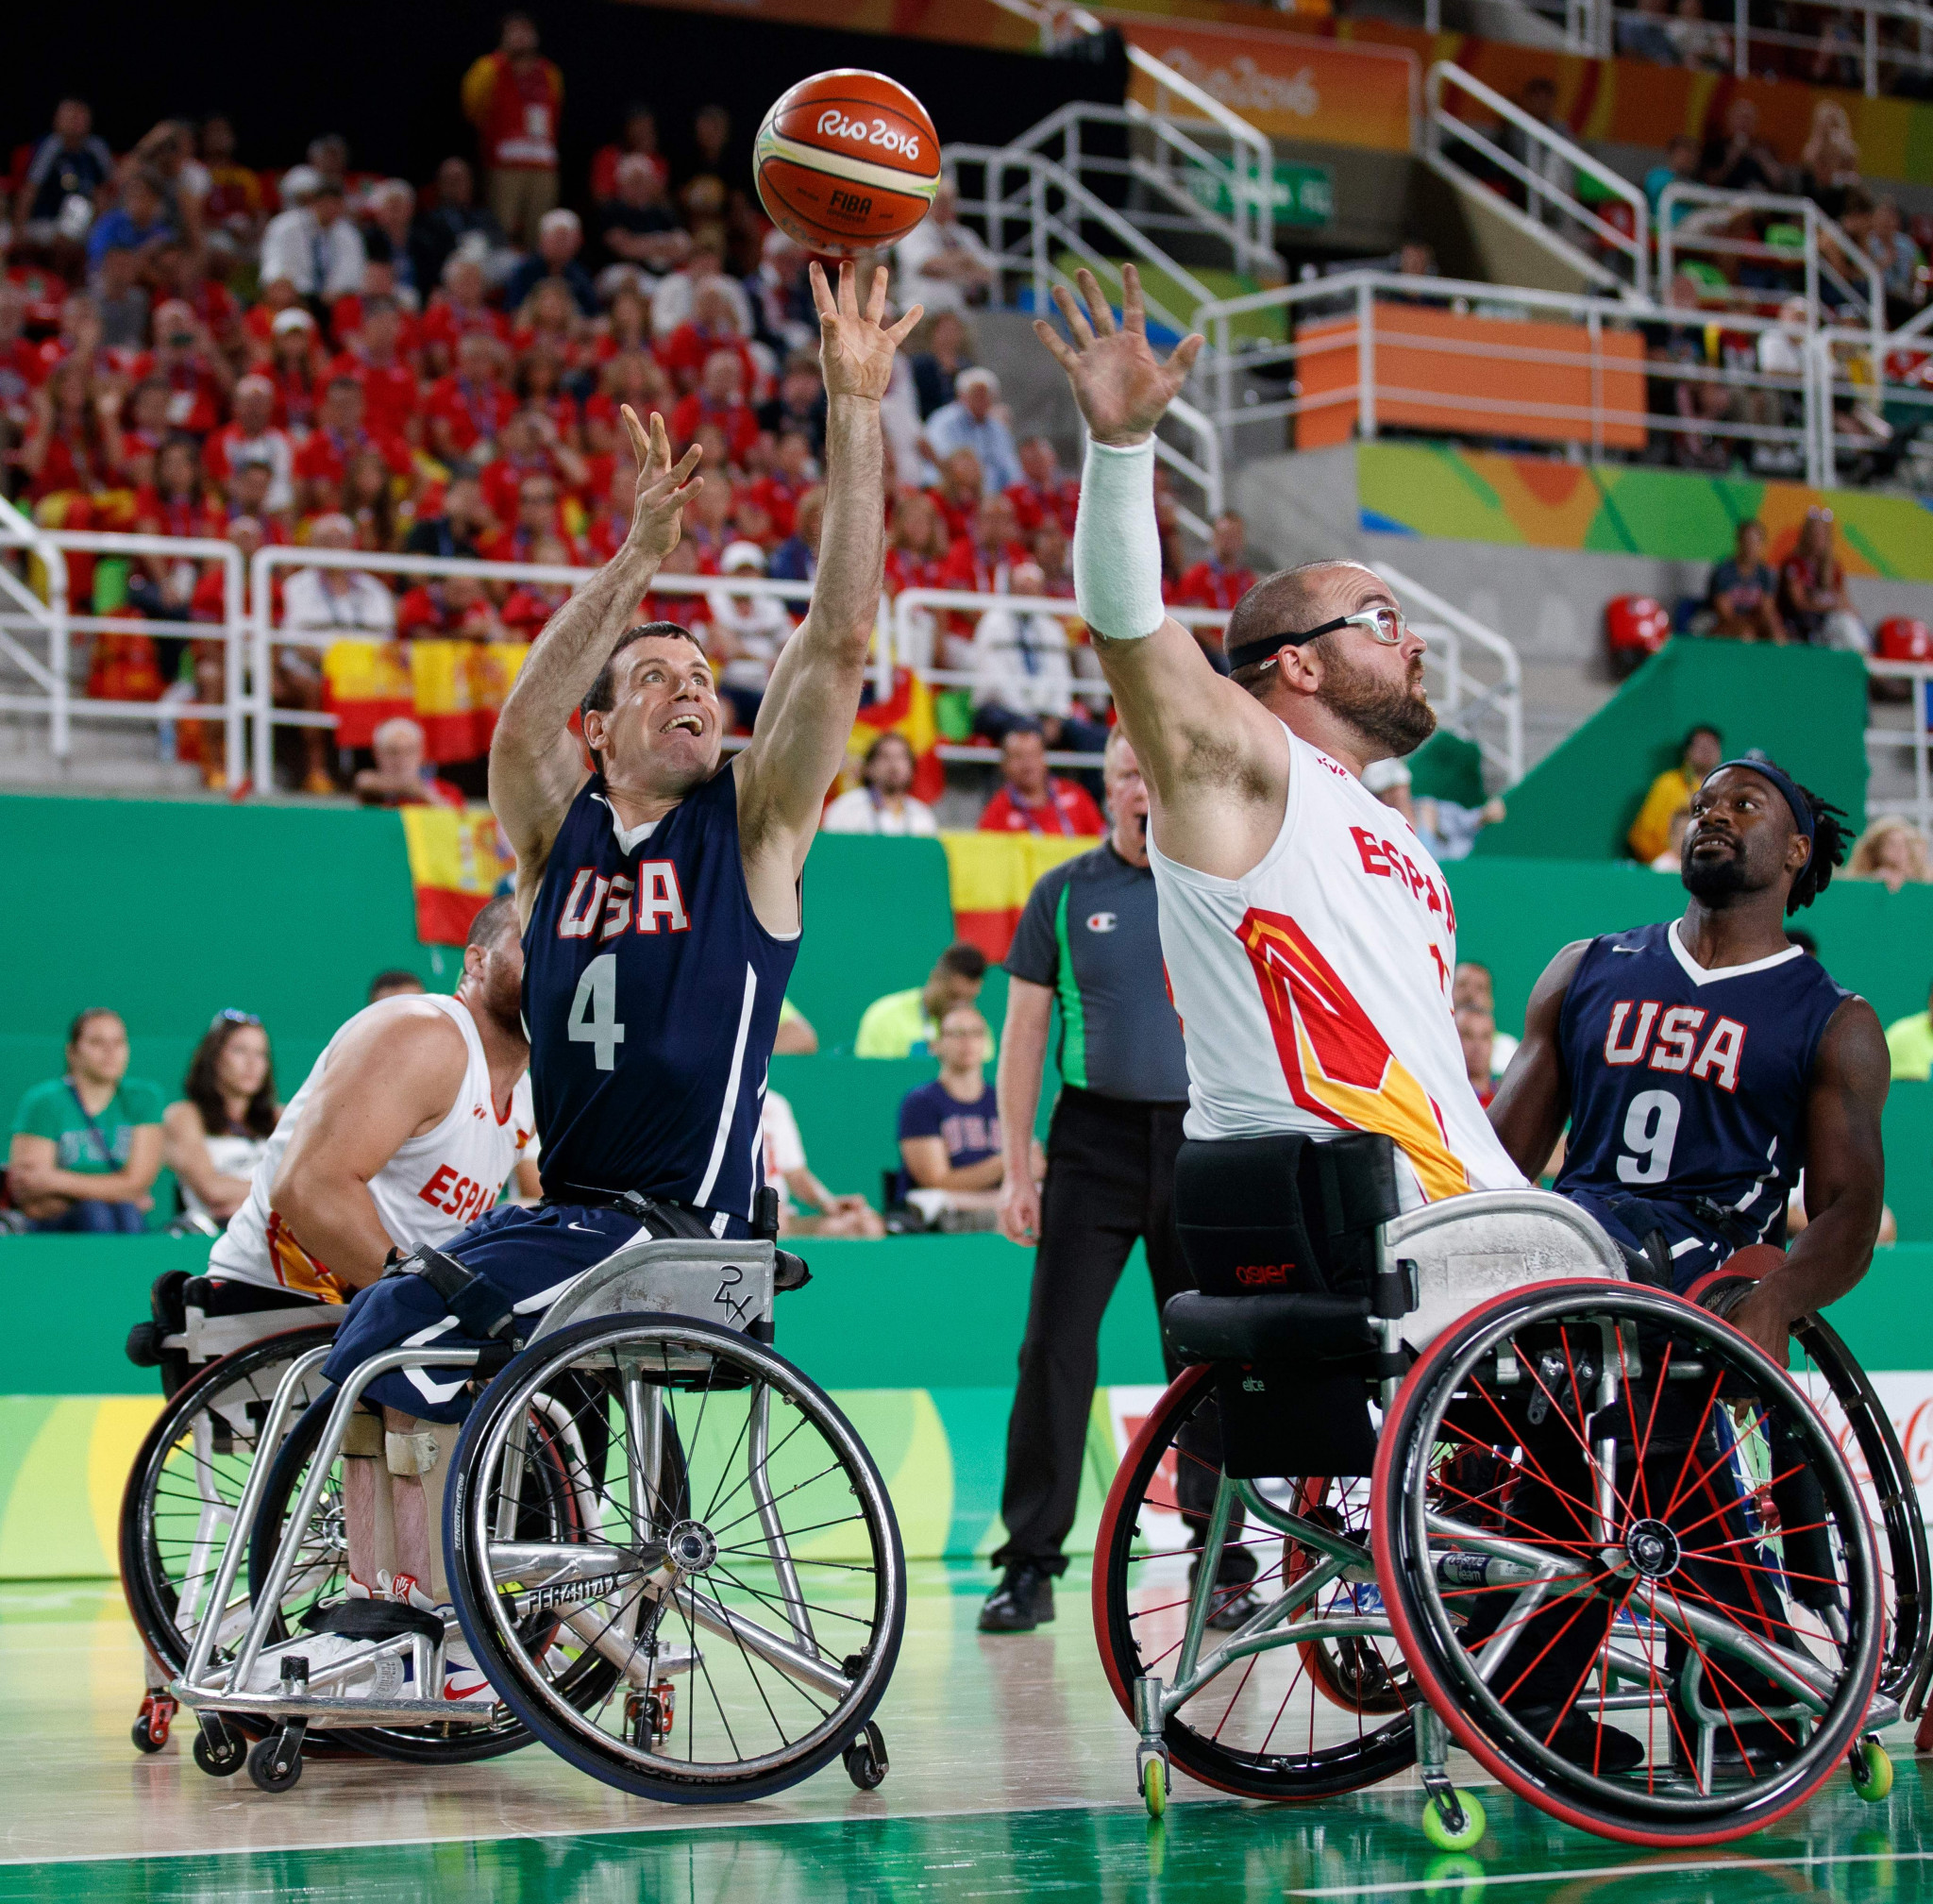 People can apply for up to 30 tickets as their first choice in the lottery for the 2020 Paralympic Games ©Getty Images